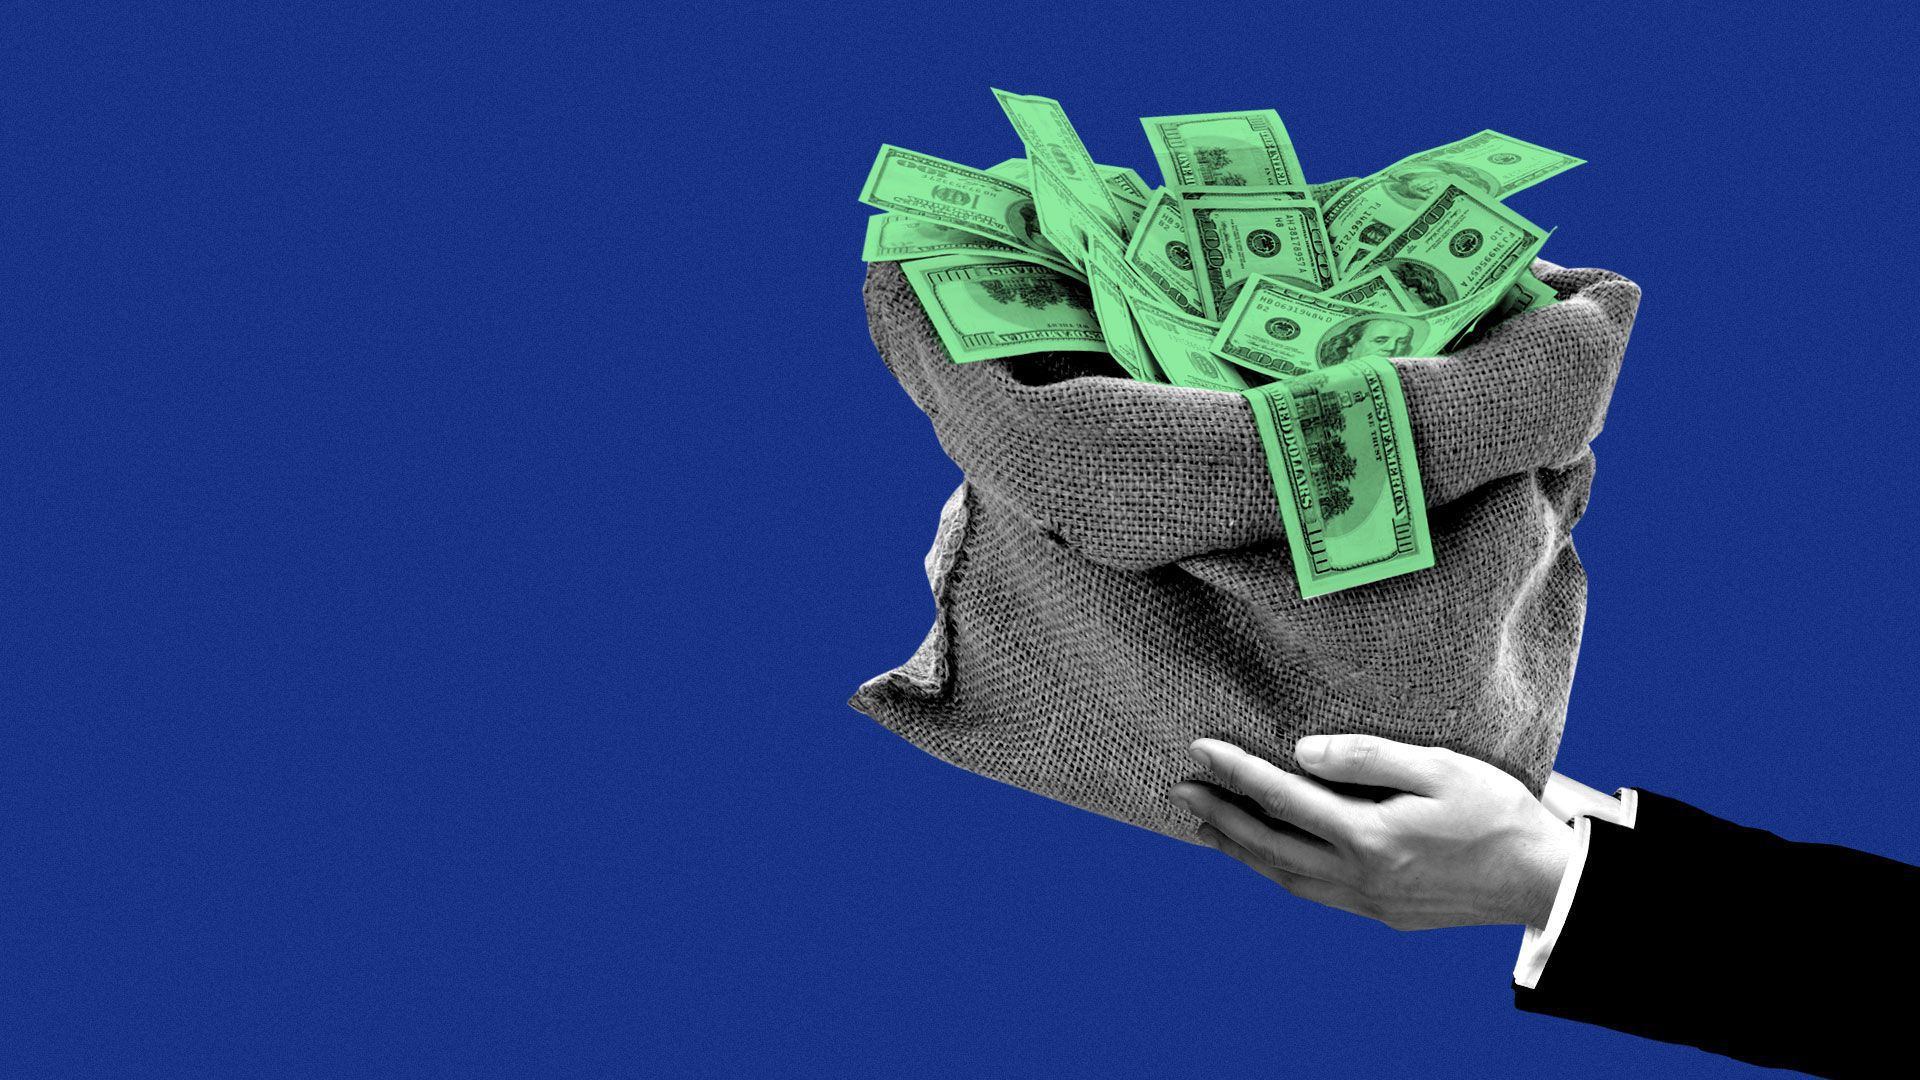 Illustration of suited hand holding a large bag of money